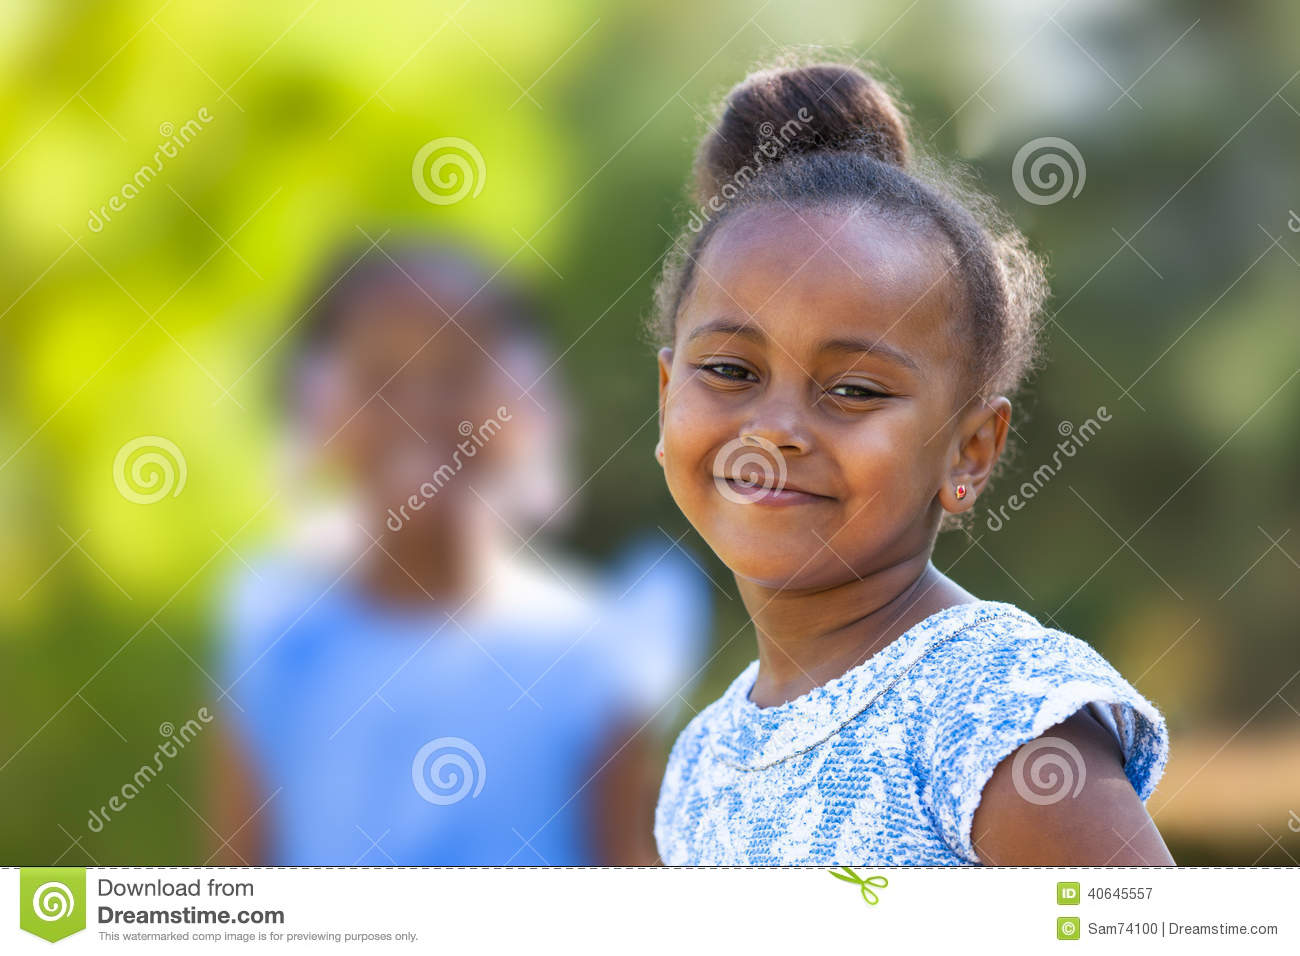 Outdoor Close Up Portrait Of A Cute Young Black Girl -6944